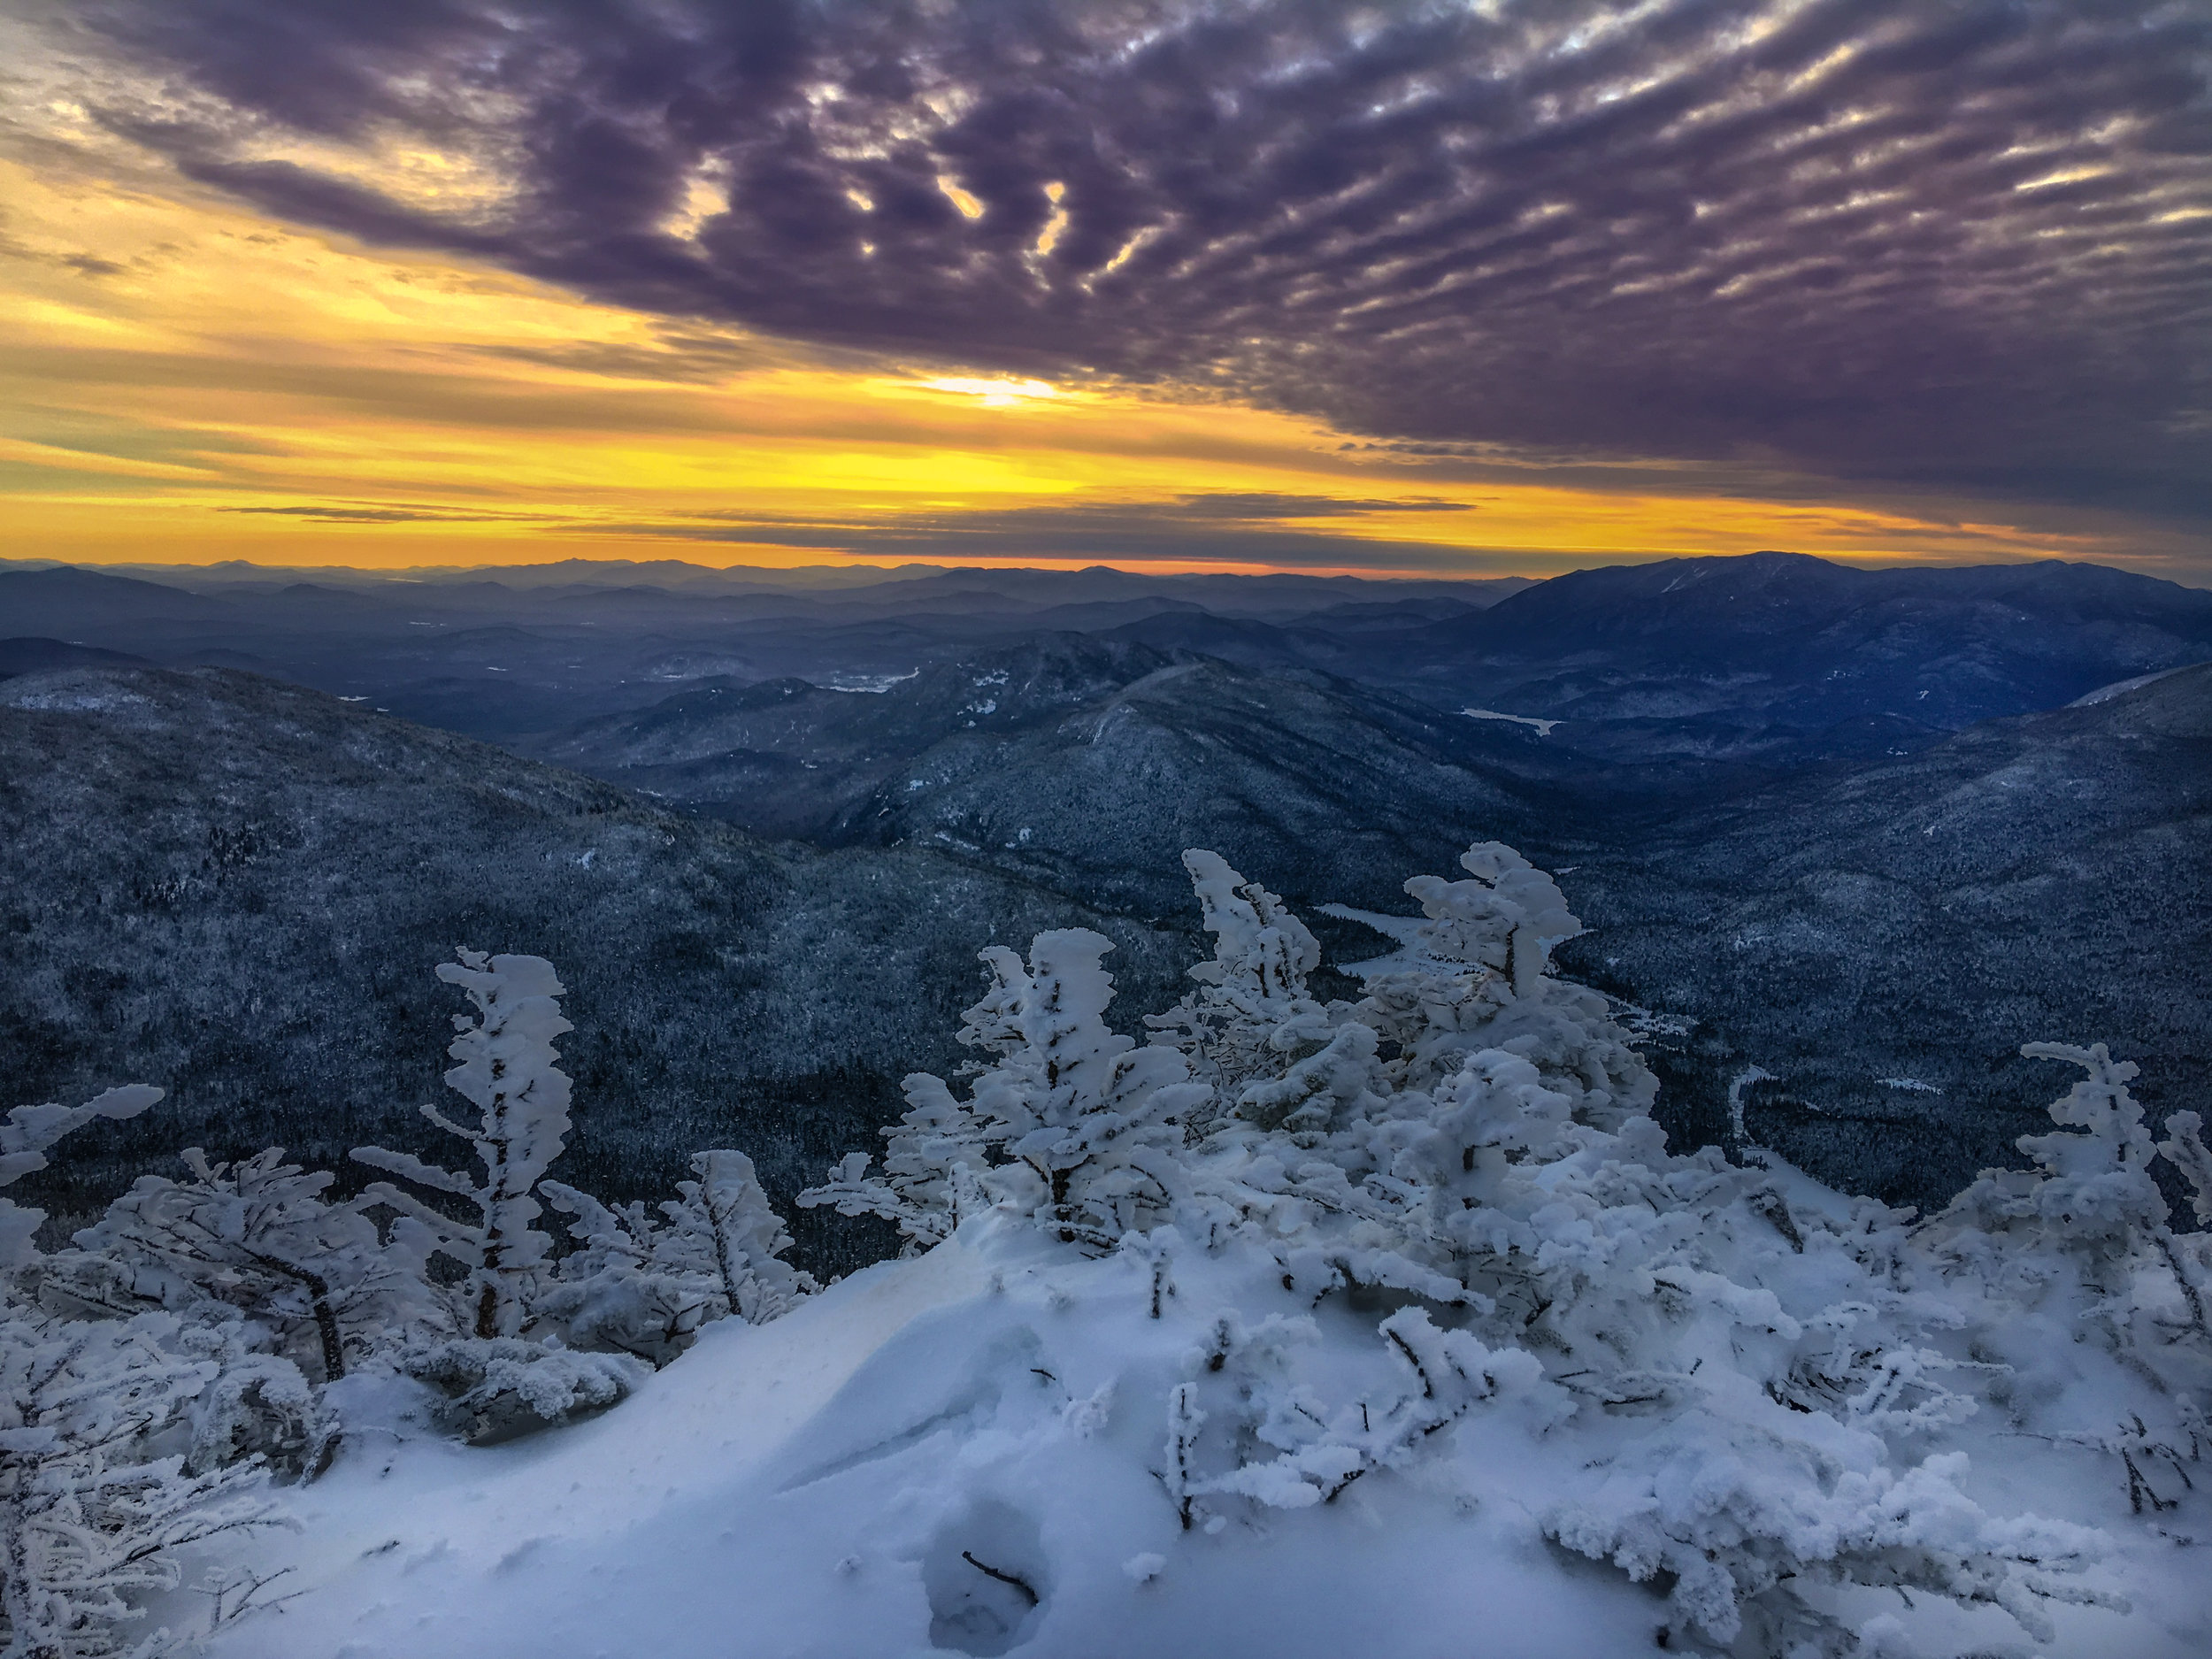 View of Sunset from the peak of Mount Colden, elevation 4,715ft.